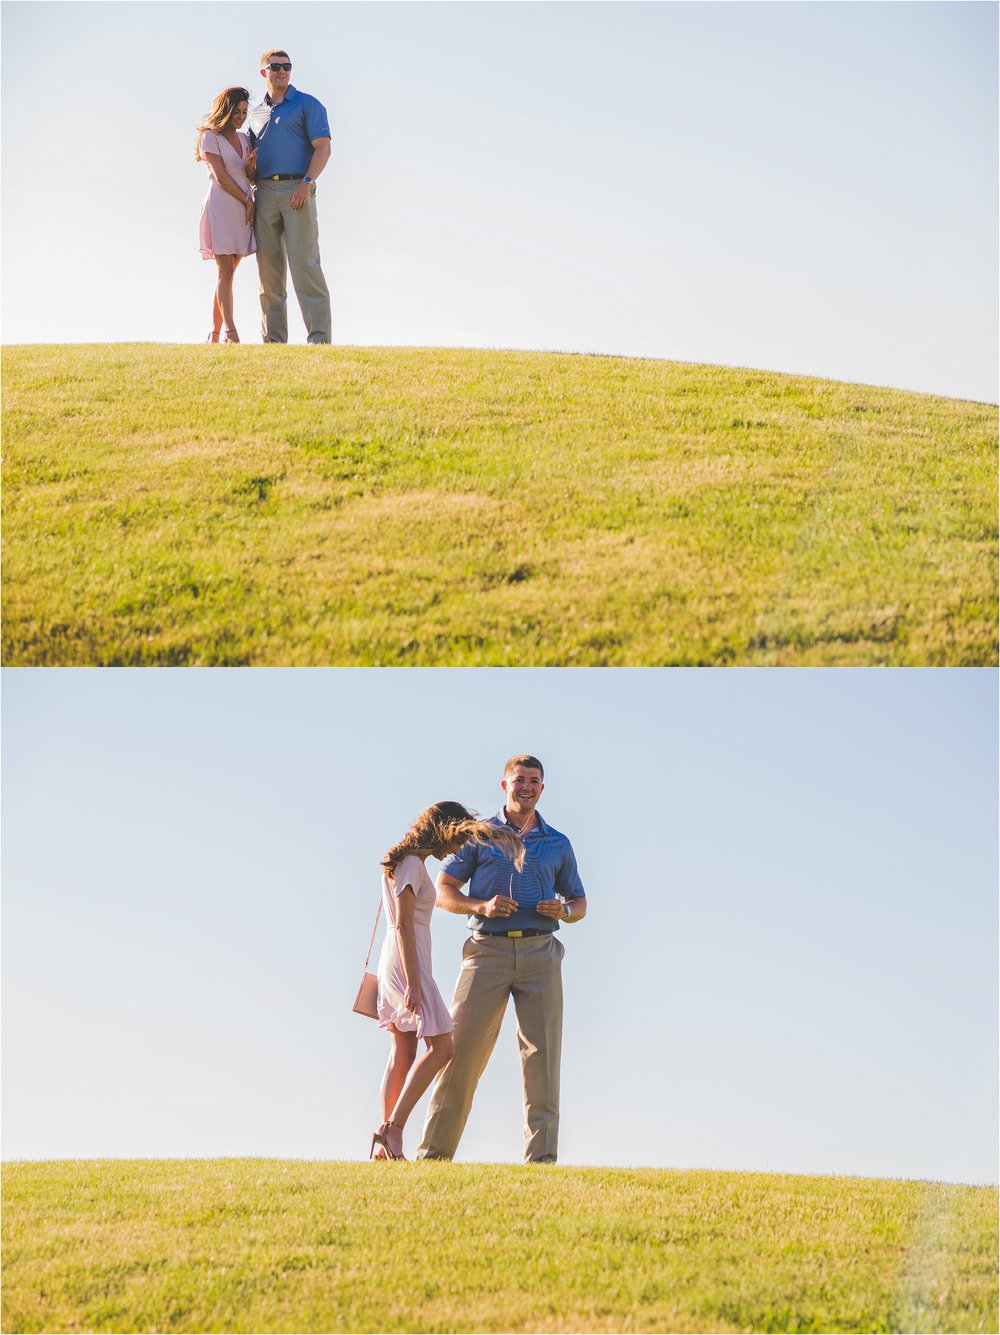 newcastle-golf-club-proposal-jannicka-mayte-seattle-washington-engagement-wedding-photographer_0010.jpg